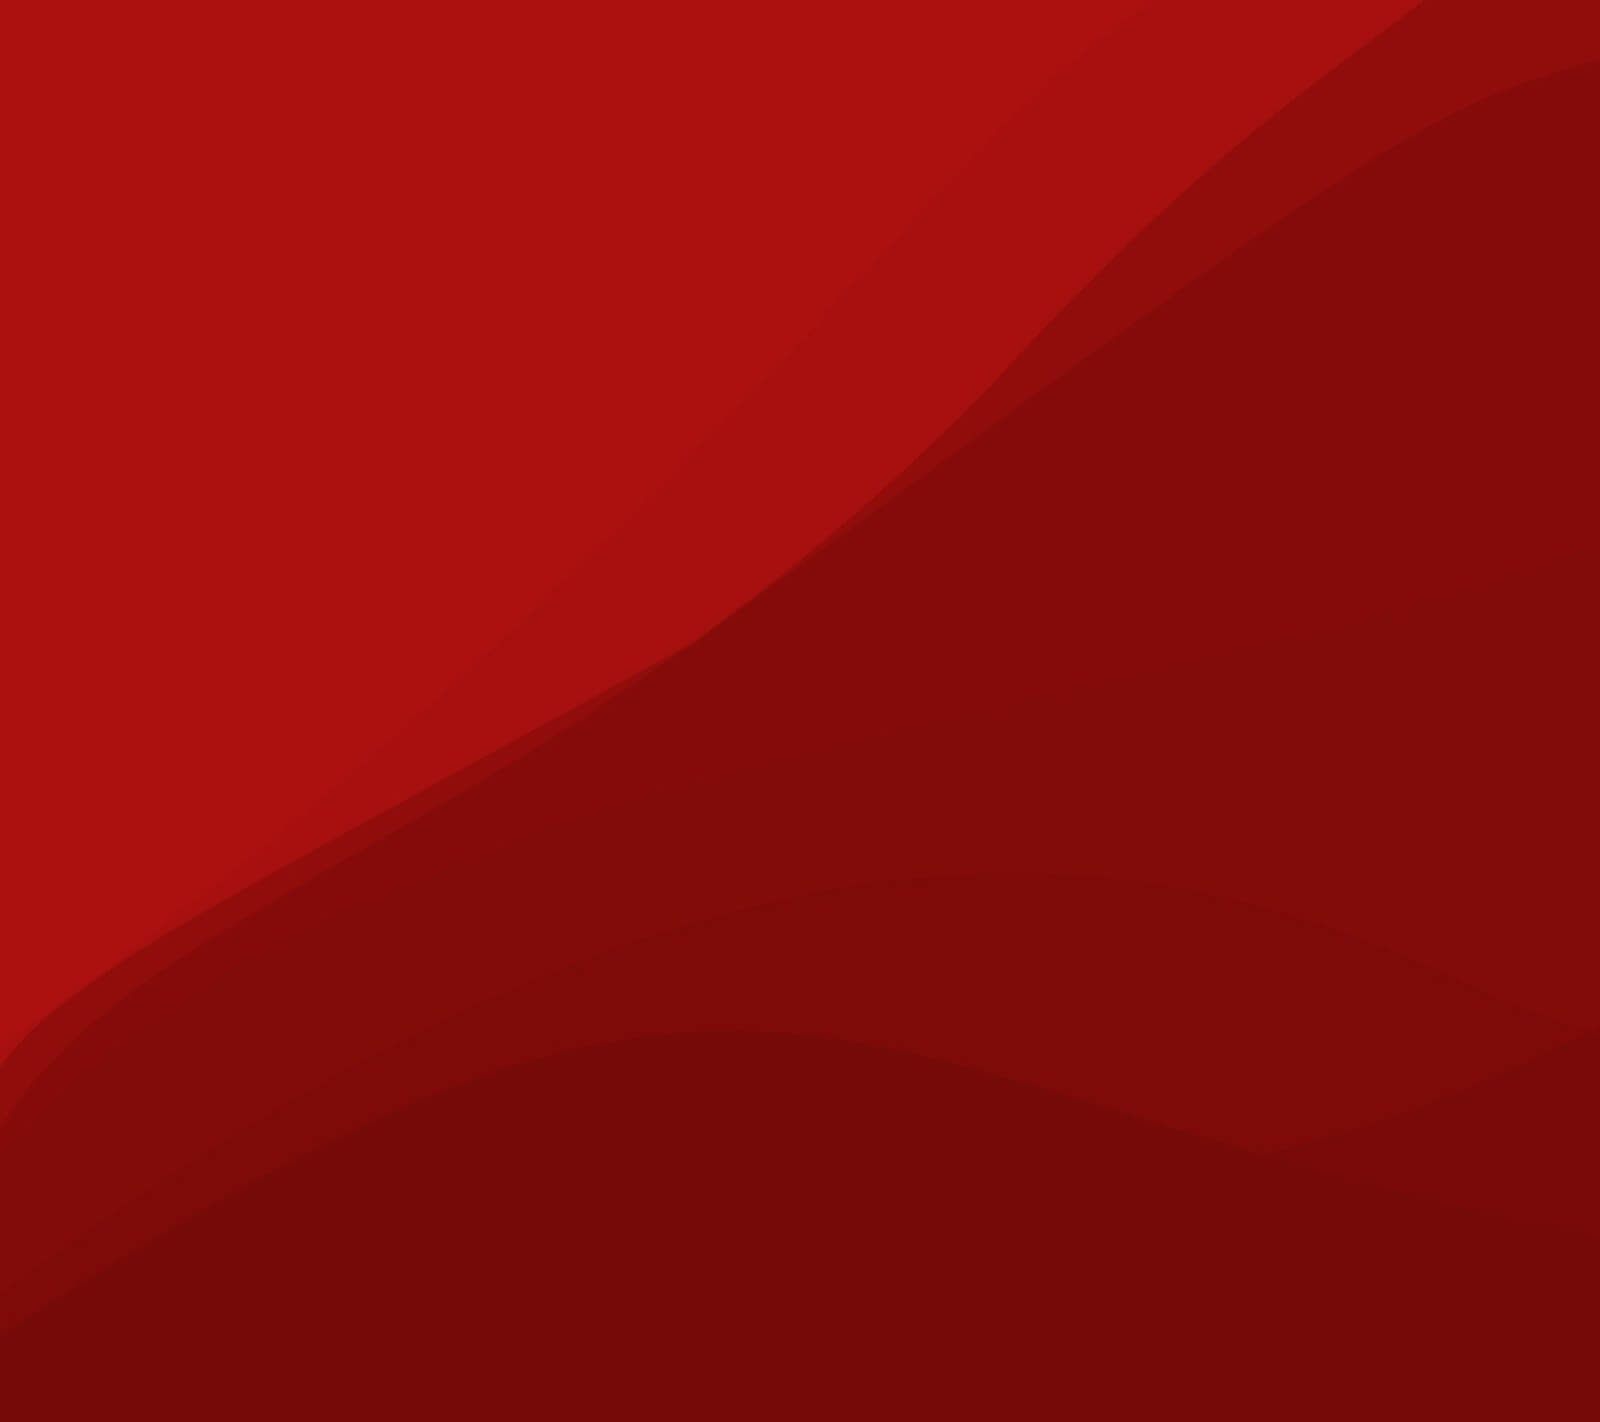 Xperia Red Lollipop Wallpapers